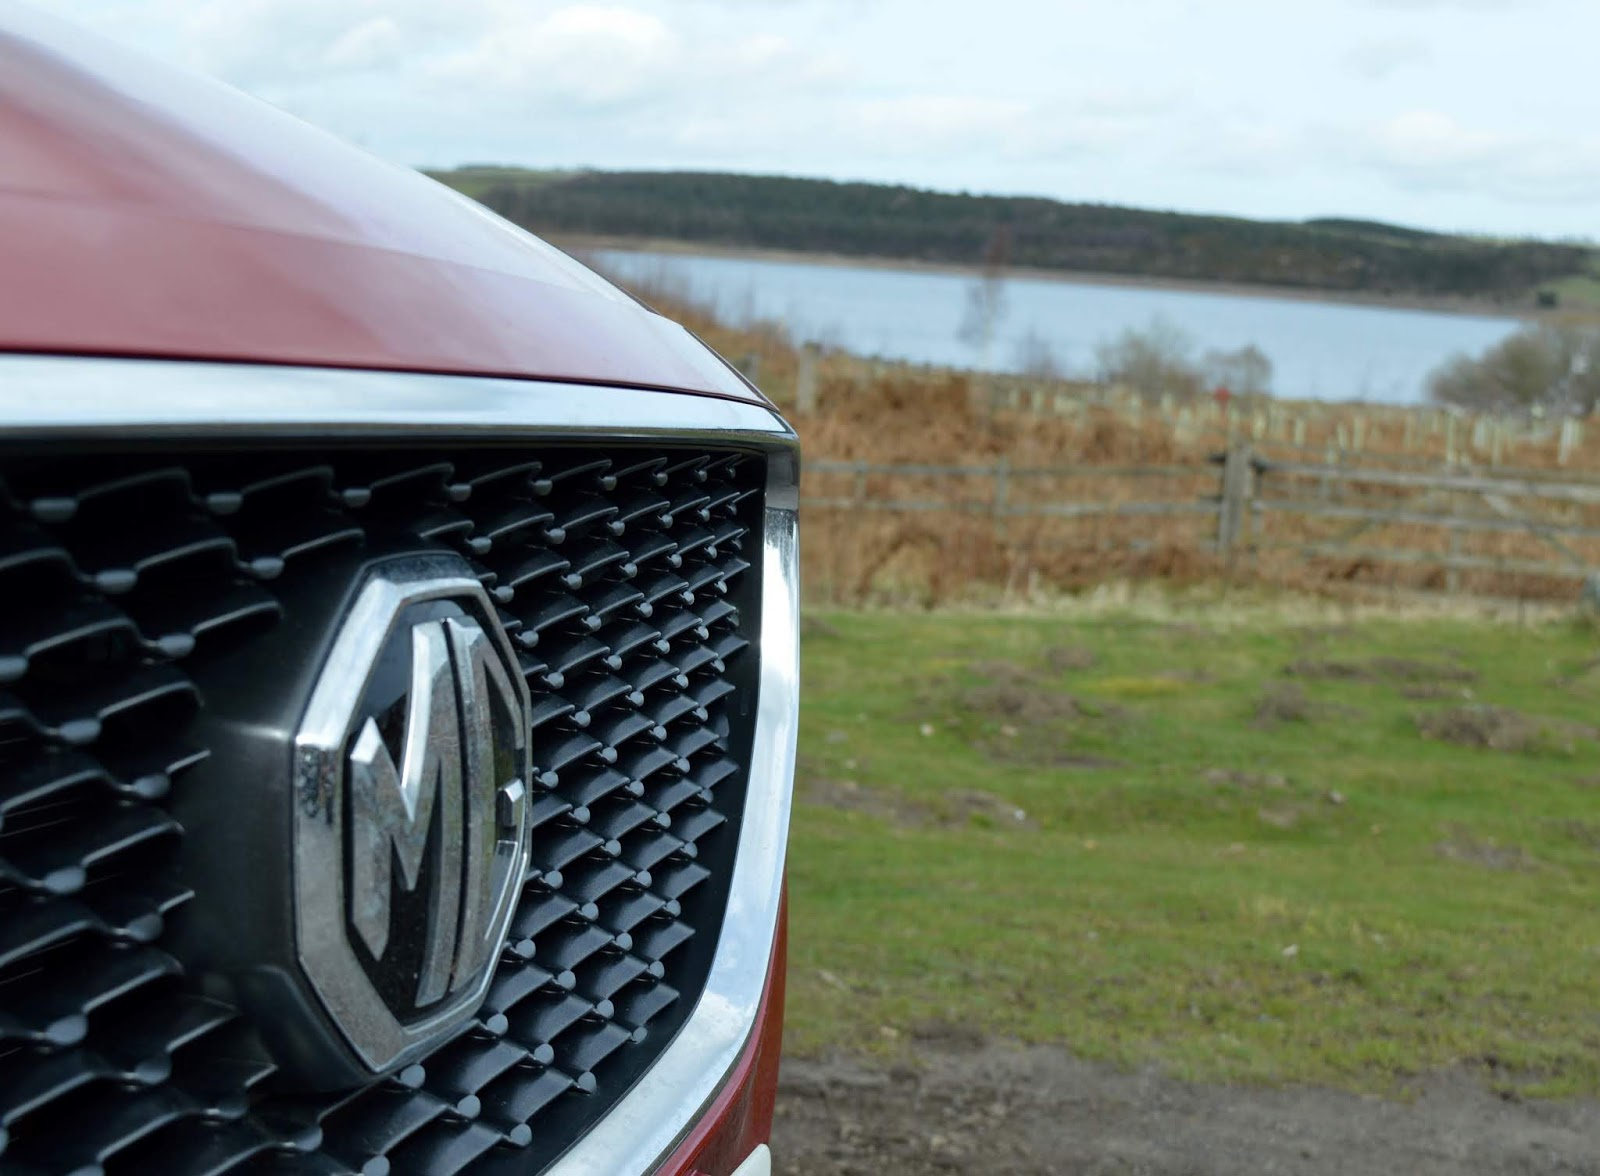 MG ZS 1.5 Excite Review | A New Compact SUV for less than £13,000 - MG badge